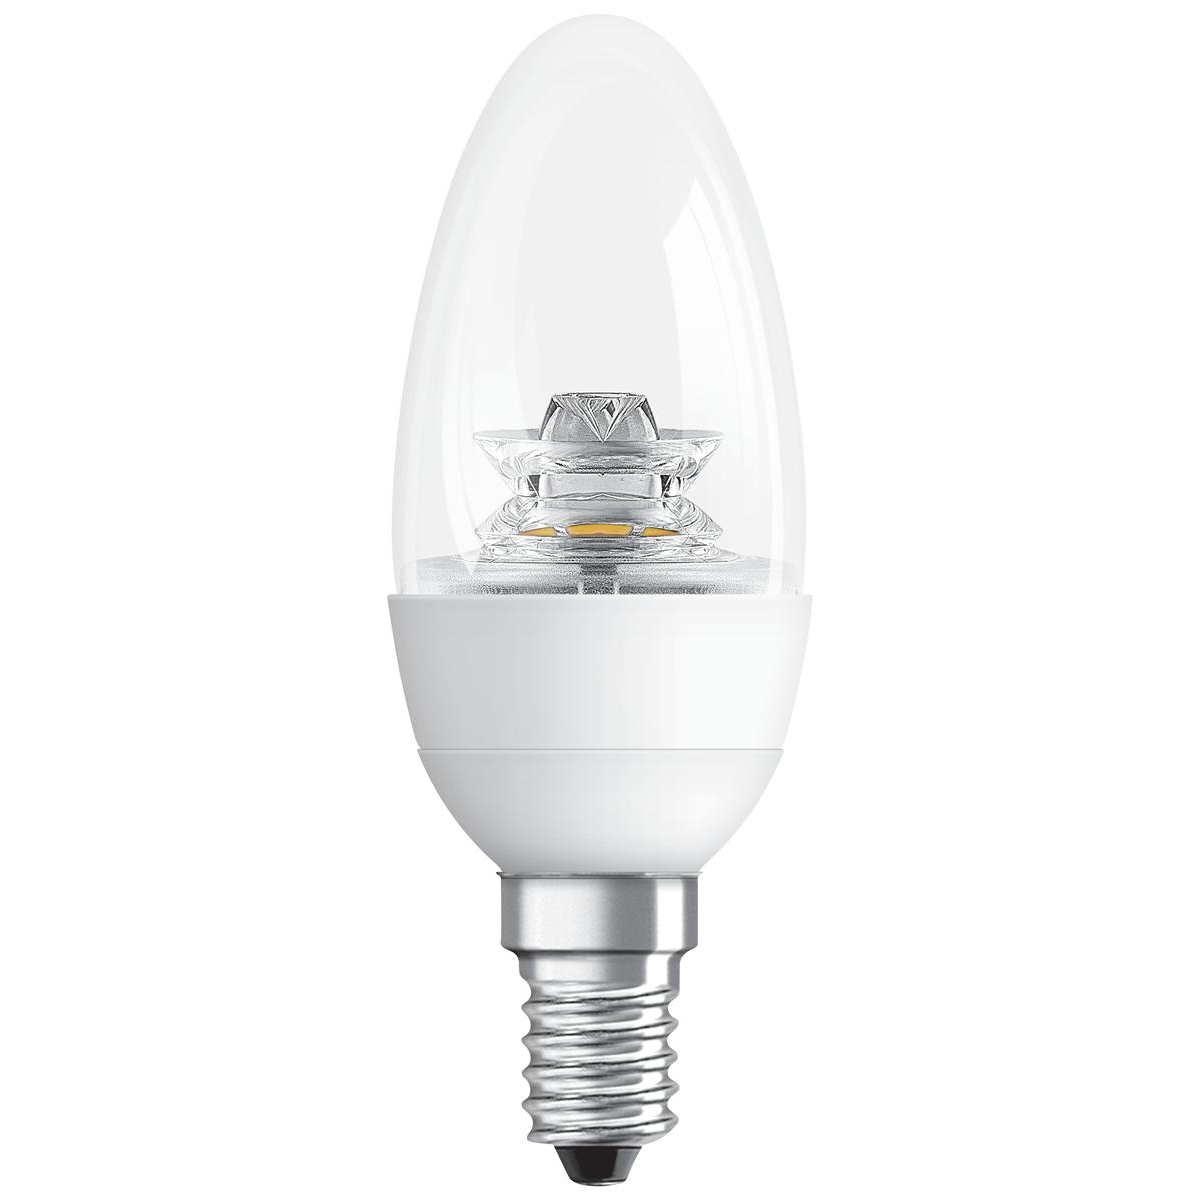 Tungsram Bulb LED E14 Candle Crown Deco 6W 40W Equivalent EEC A+ Energy Smart Dimmable Clear Ref 93030251